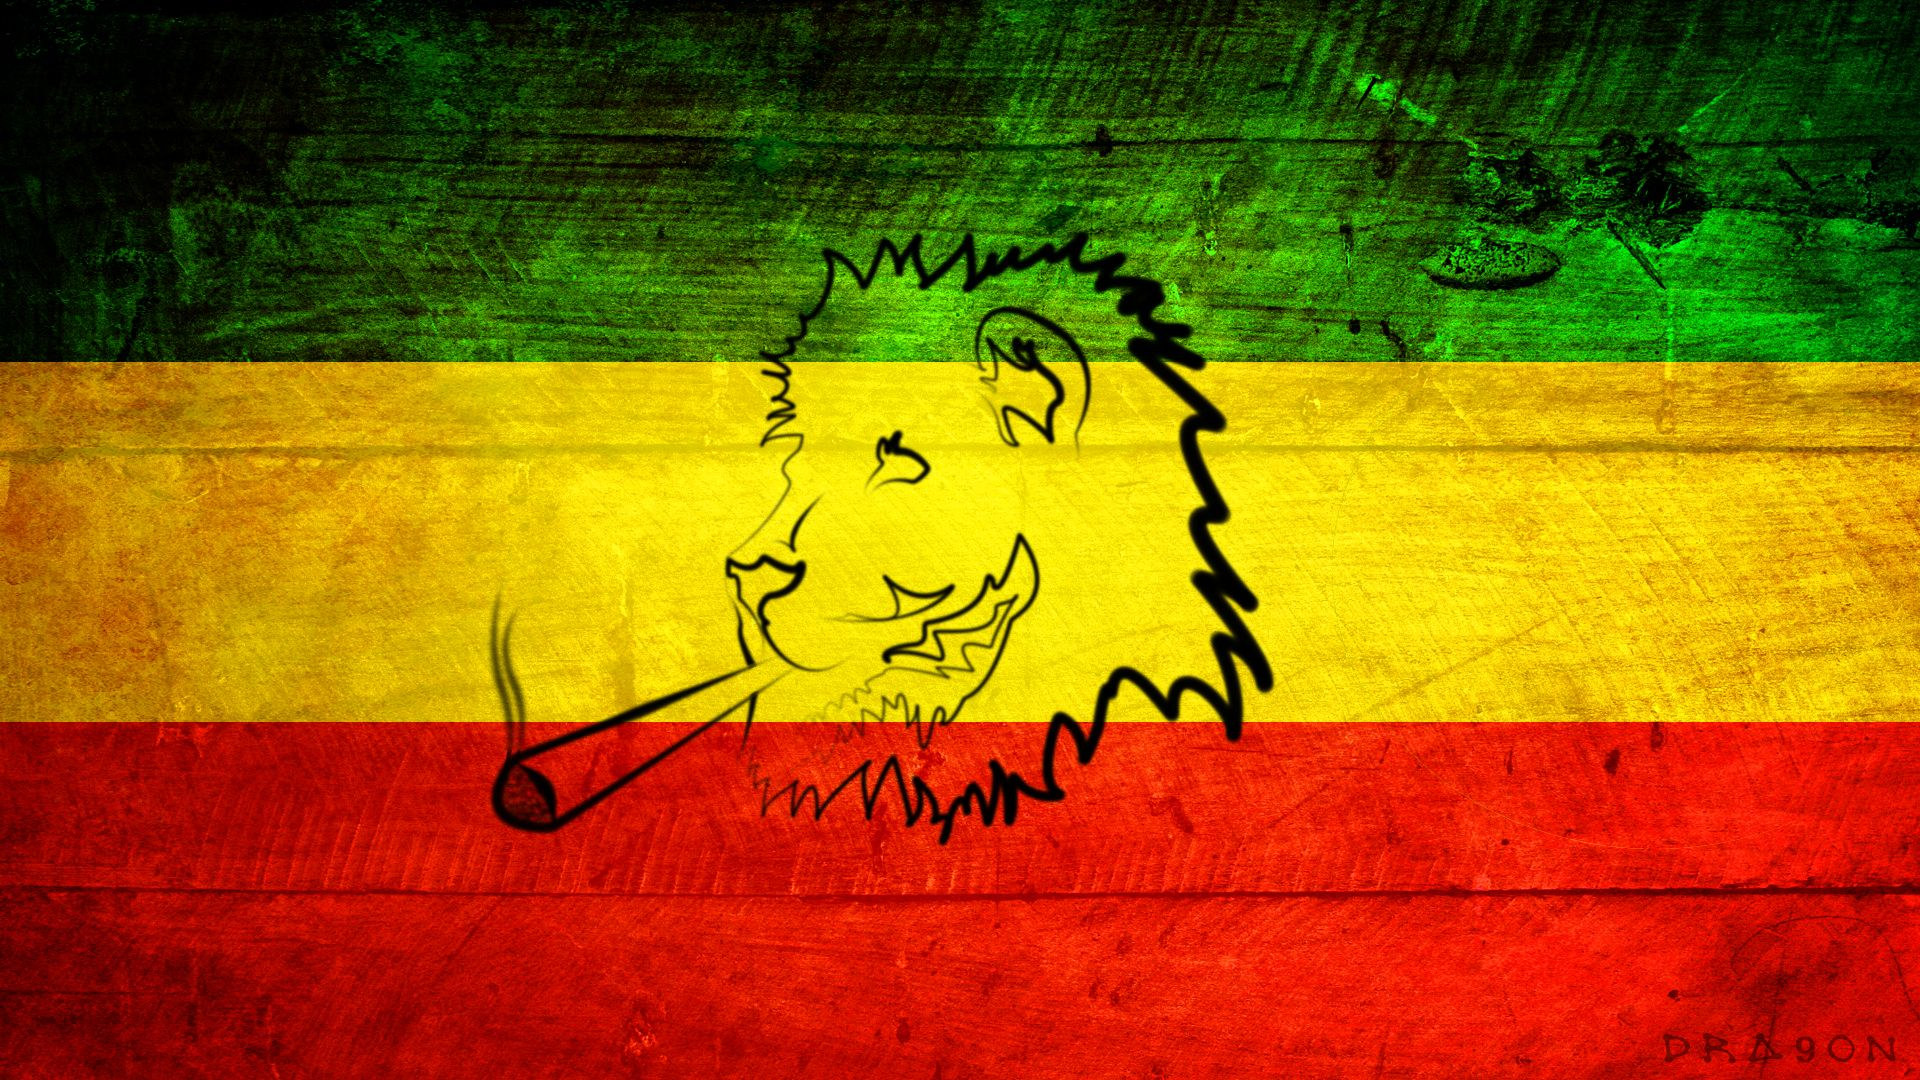 Wallpaper iphone rasta - Rasta Lion With Dreads Wallpaper